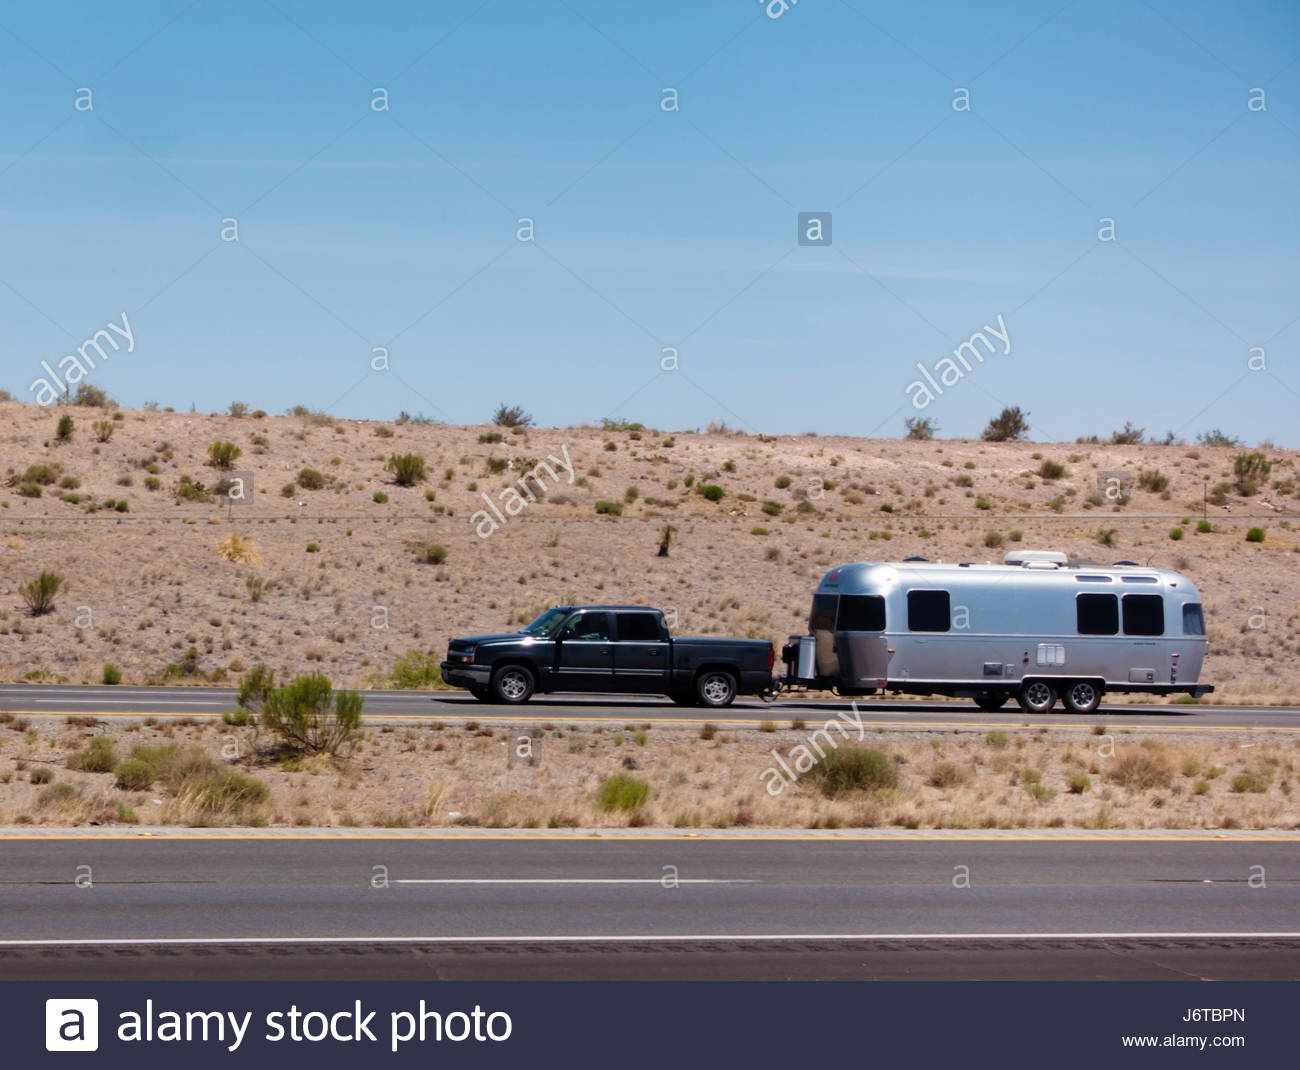 Pickup towing travel trailer on I-10 in southeastern Arizona one person visible - Stock-Bilder